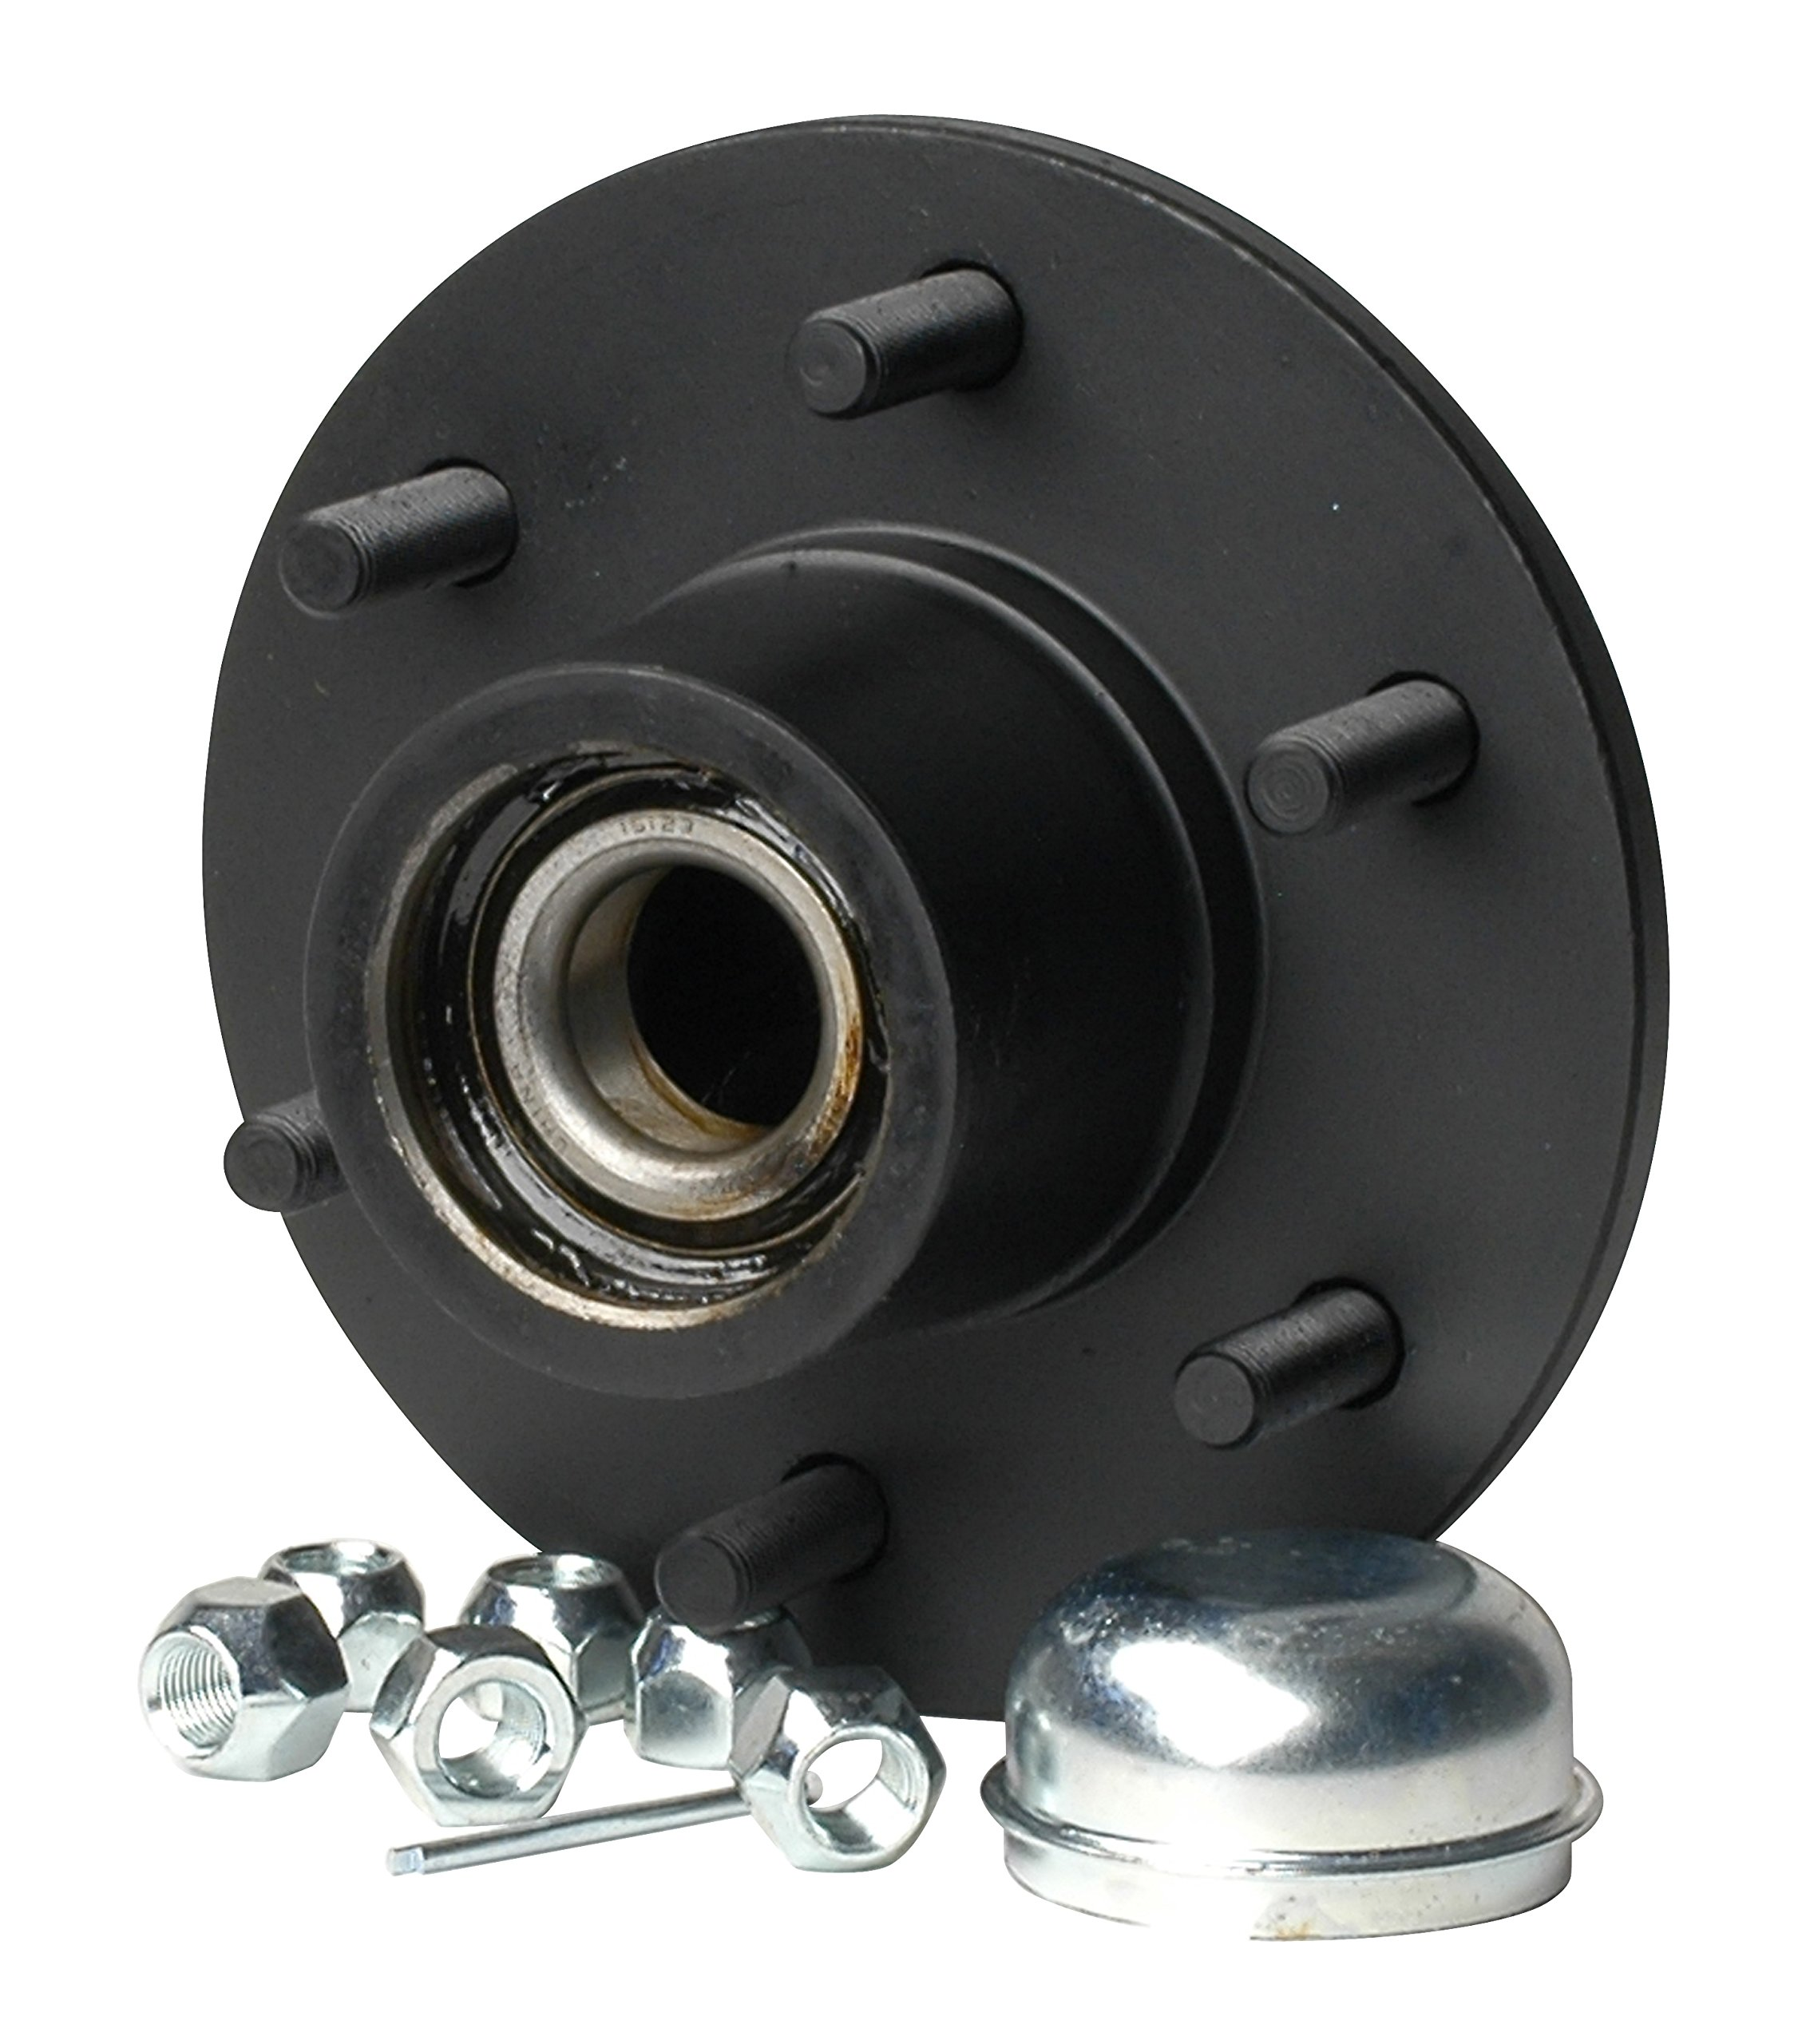 CE Smith Trailer 13711 Trailer Hub Kit (Tapered 1 3/4'' to 1 1/4'' Stud (6 x 5 1/2) 12'' Brake Size)- Replacement Parts and Accessories for Your Ski Boat, Fishing Boat or Sailboat Trailer by CE Smith